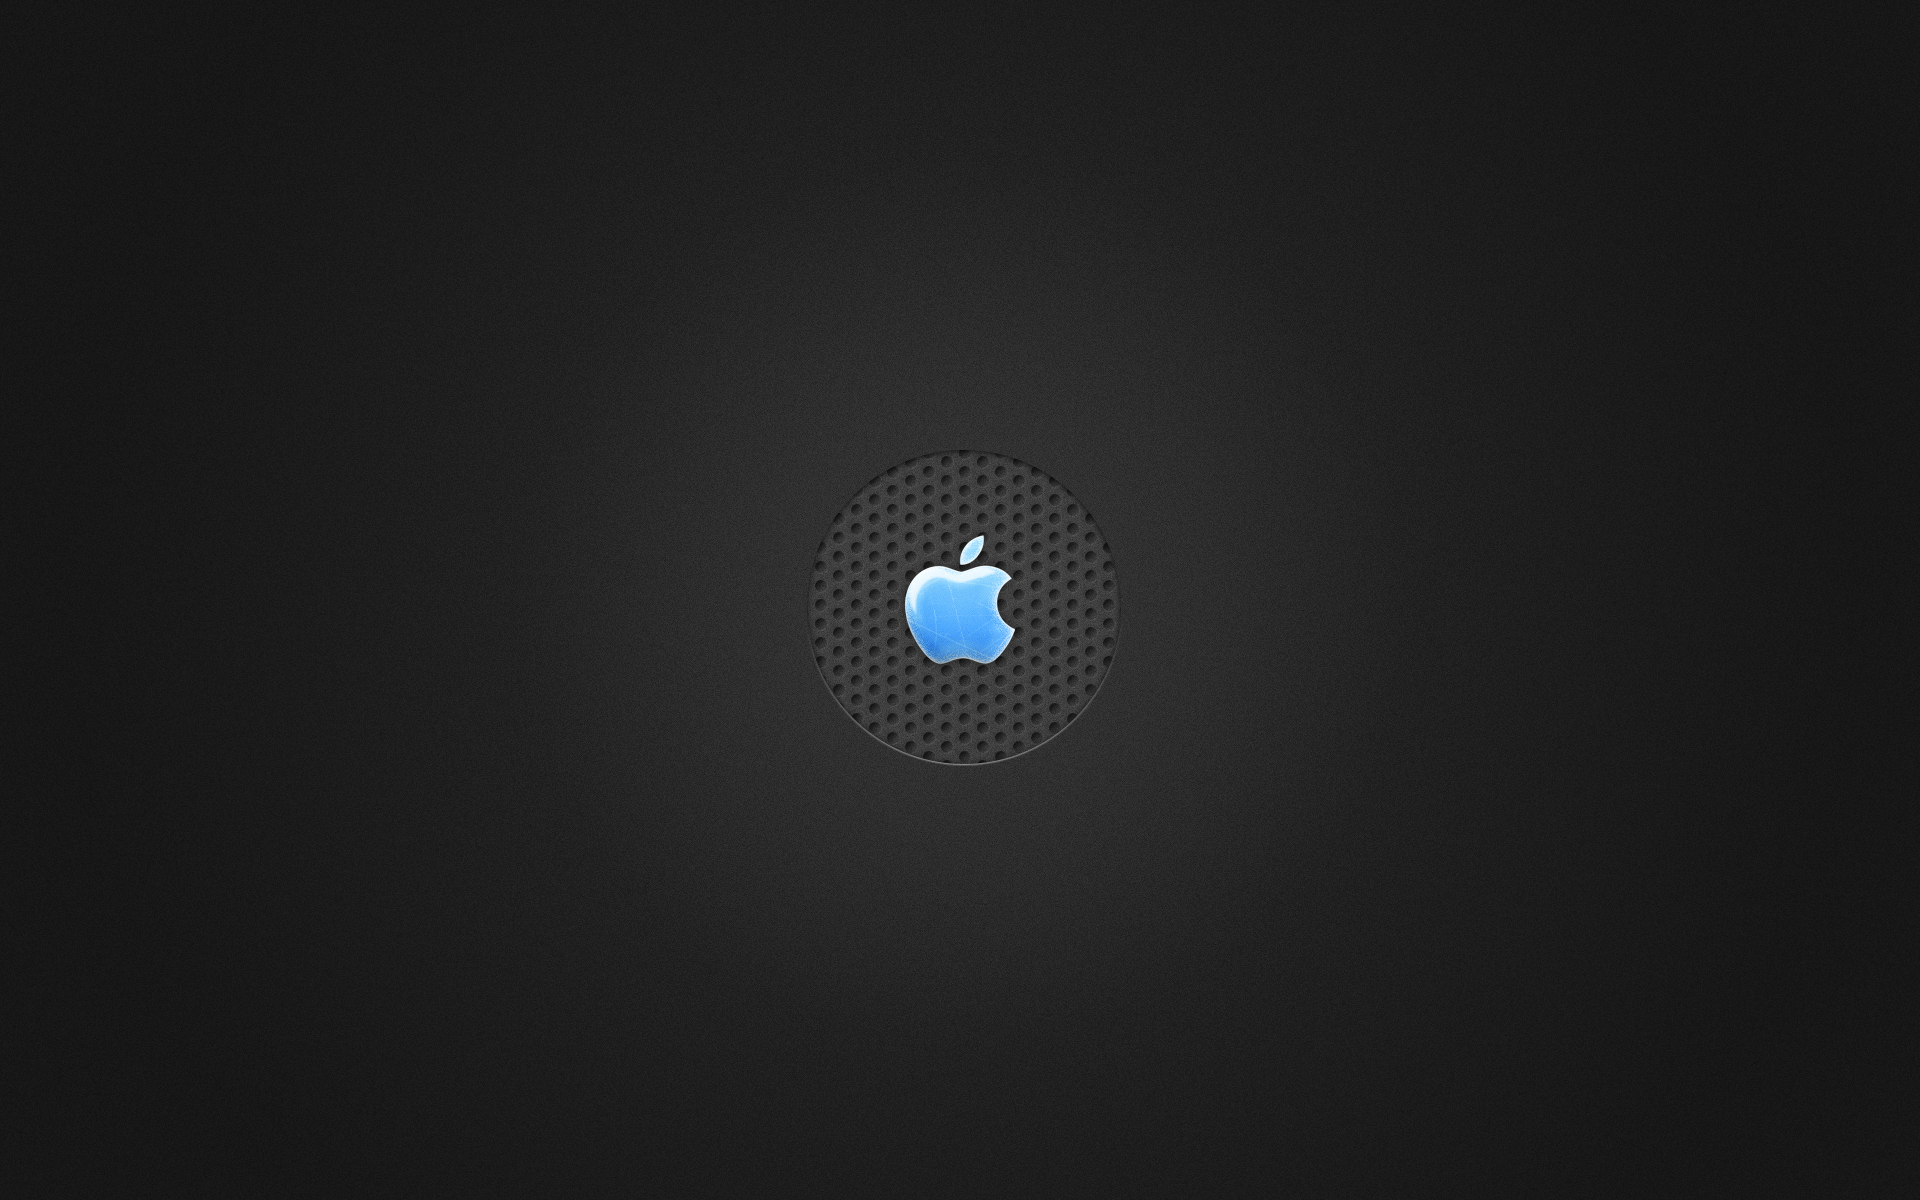 Very stylish wallpaper with blue apple in the center dedicated to the Mac.